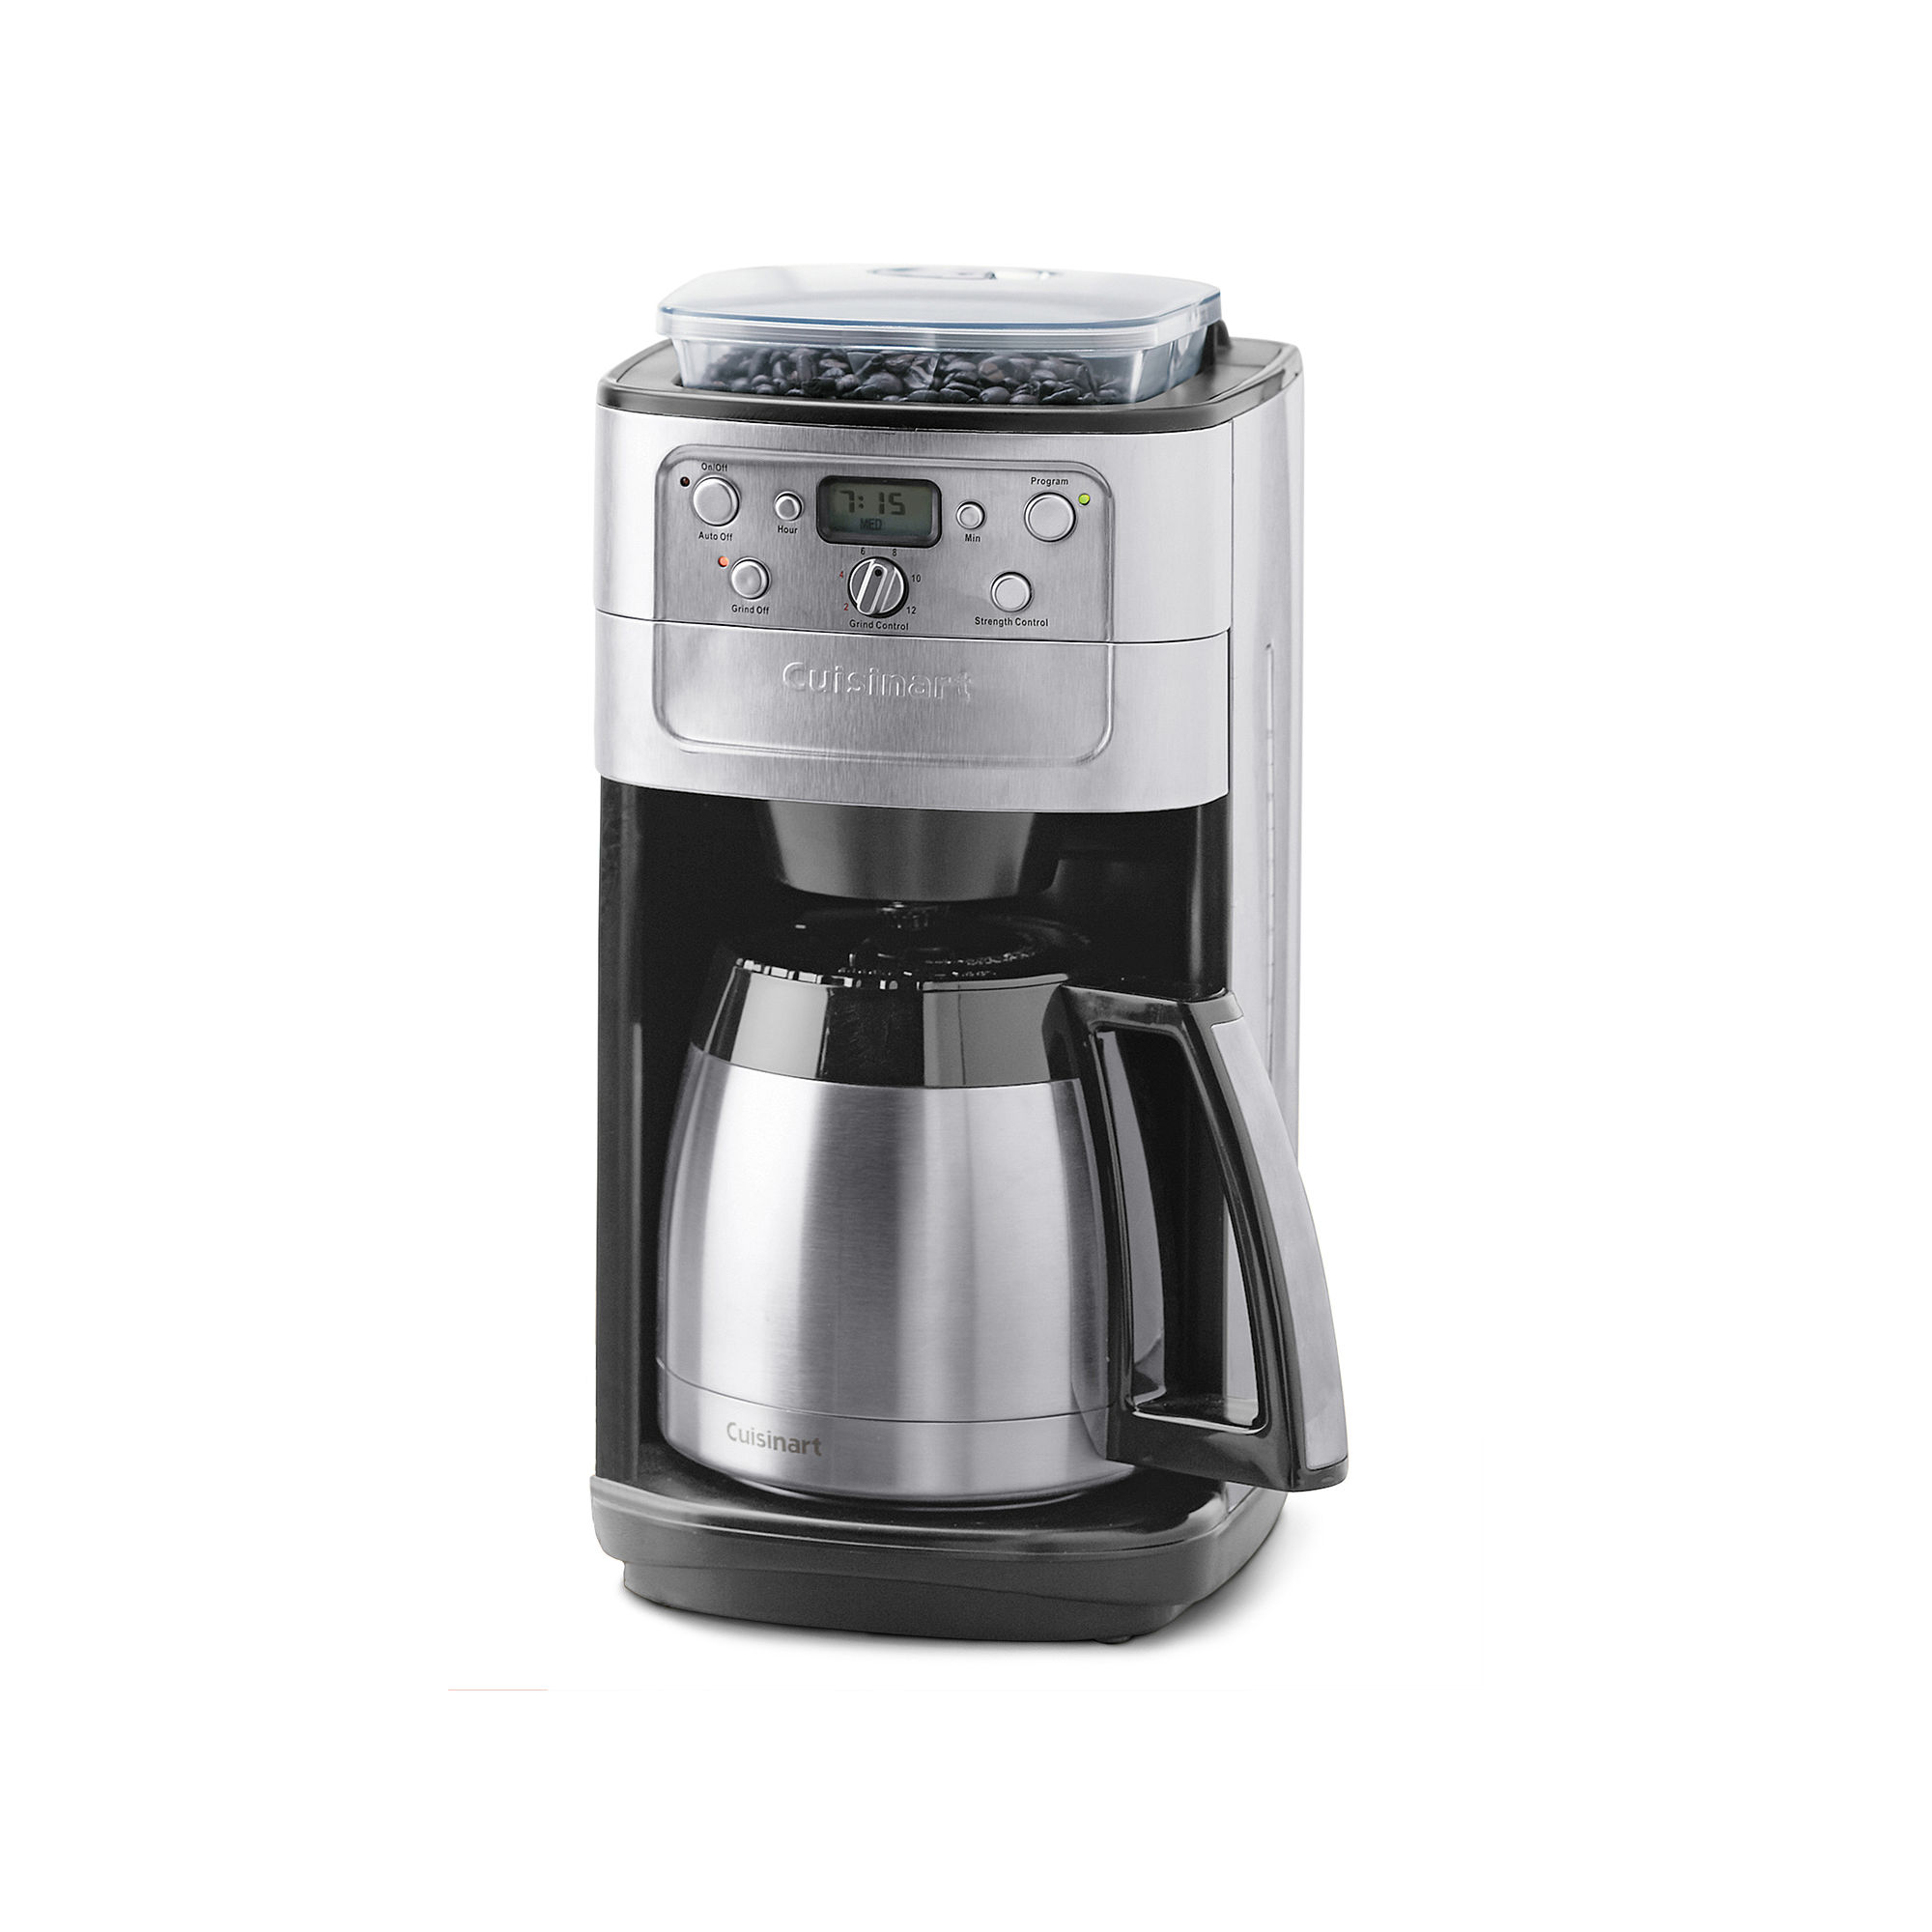 Dgb 900bc cuisinart programmable burr grind brew with automatic burr grinder - Find it at Shopwiki